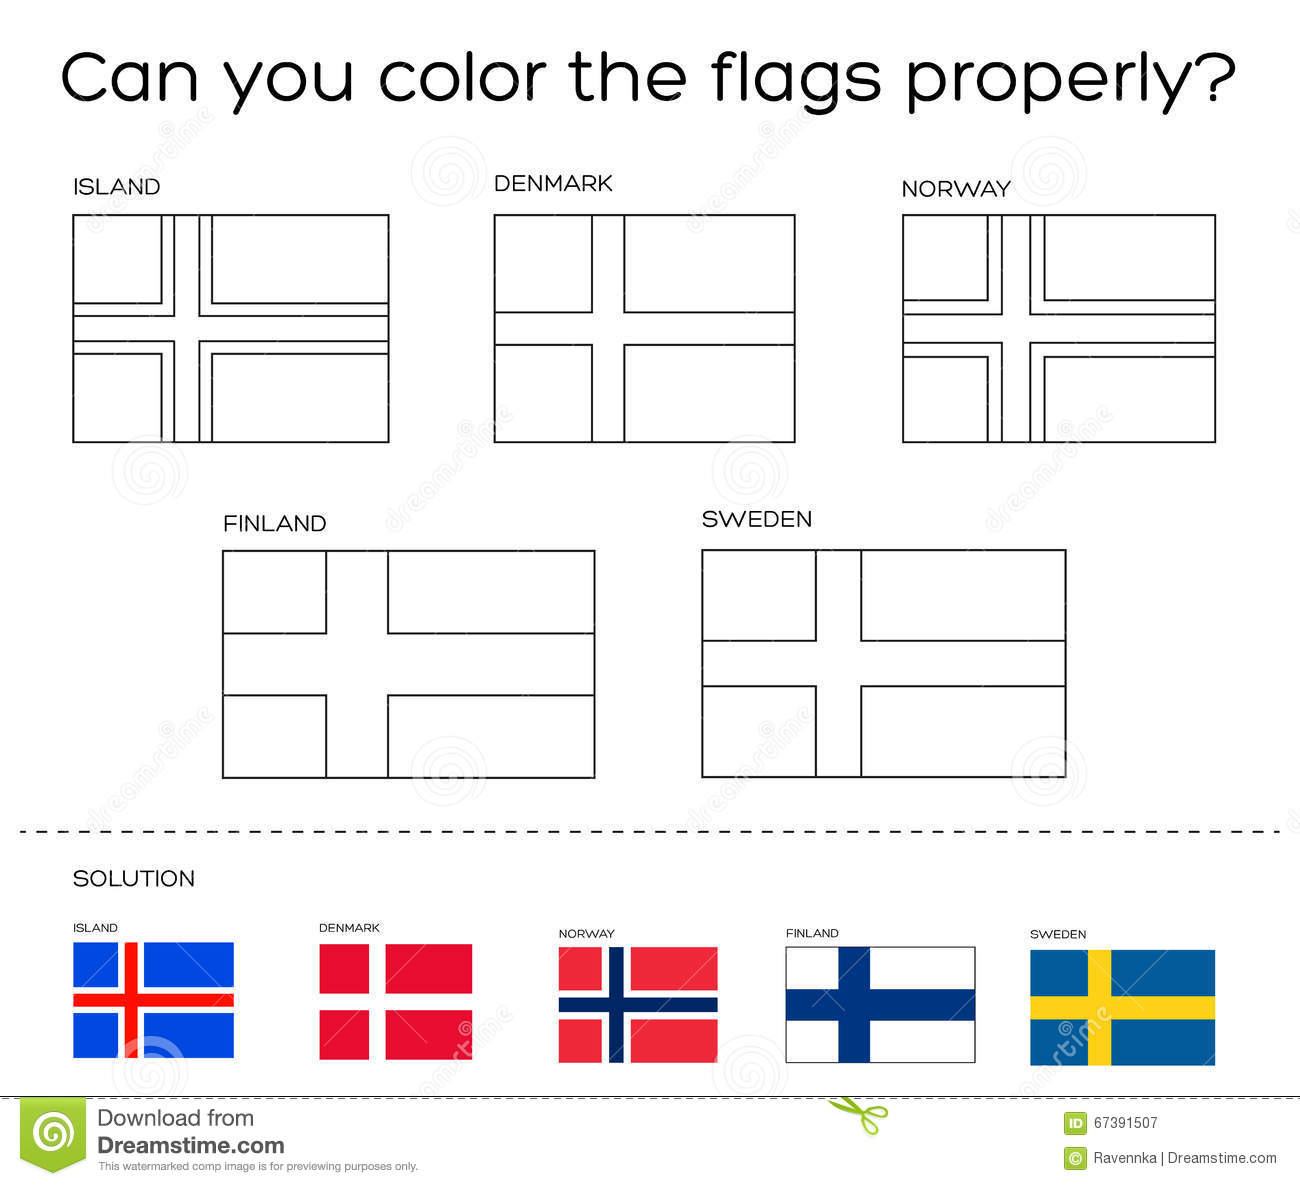 norway flag coloring page - coloring book task scandinavian flags with solution